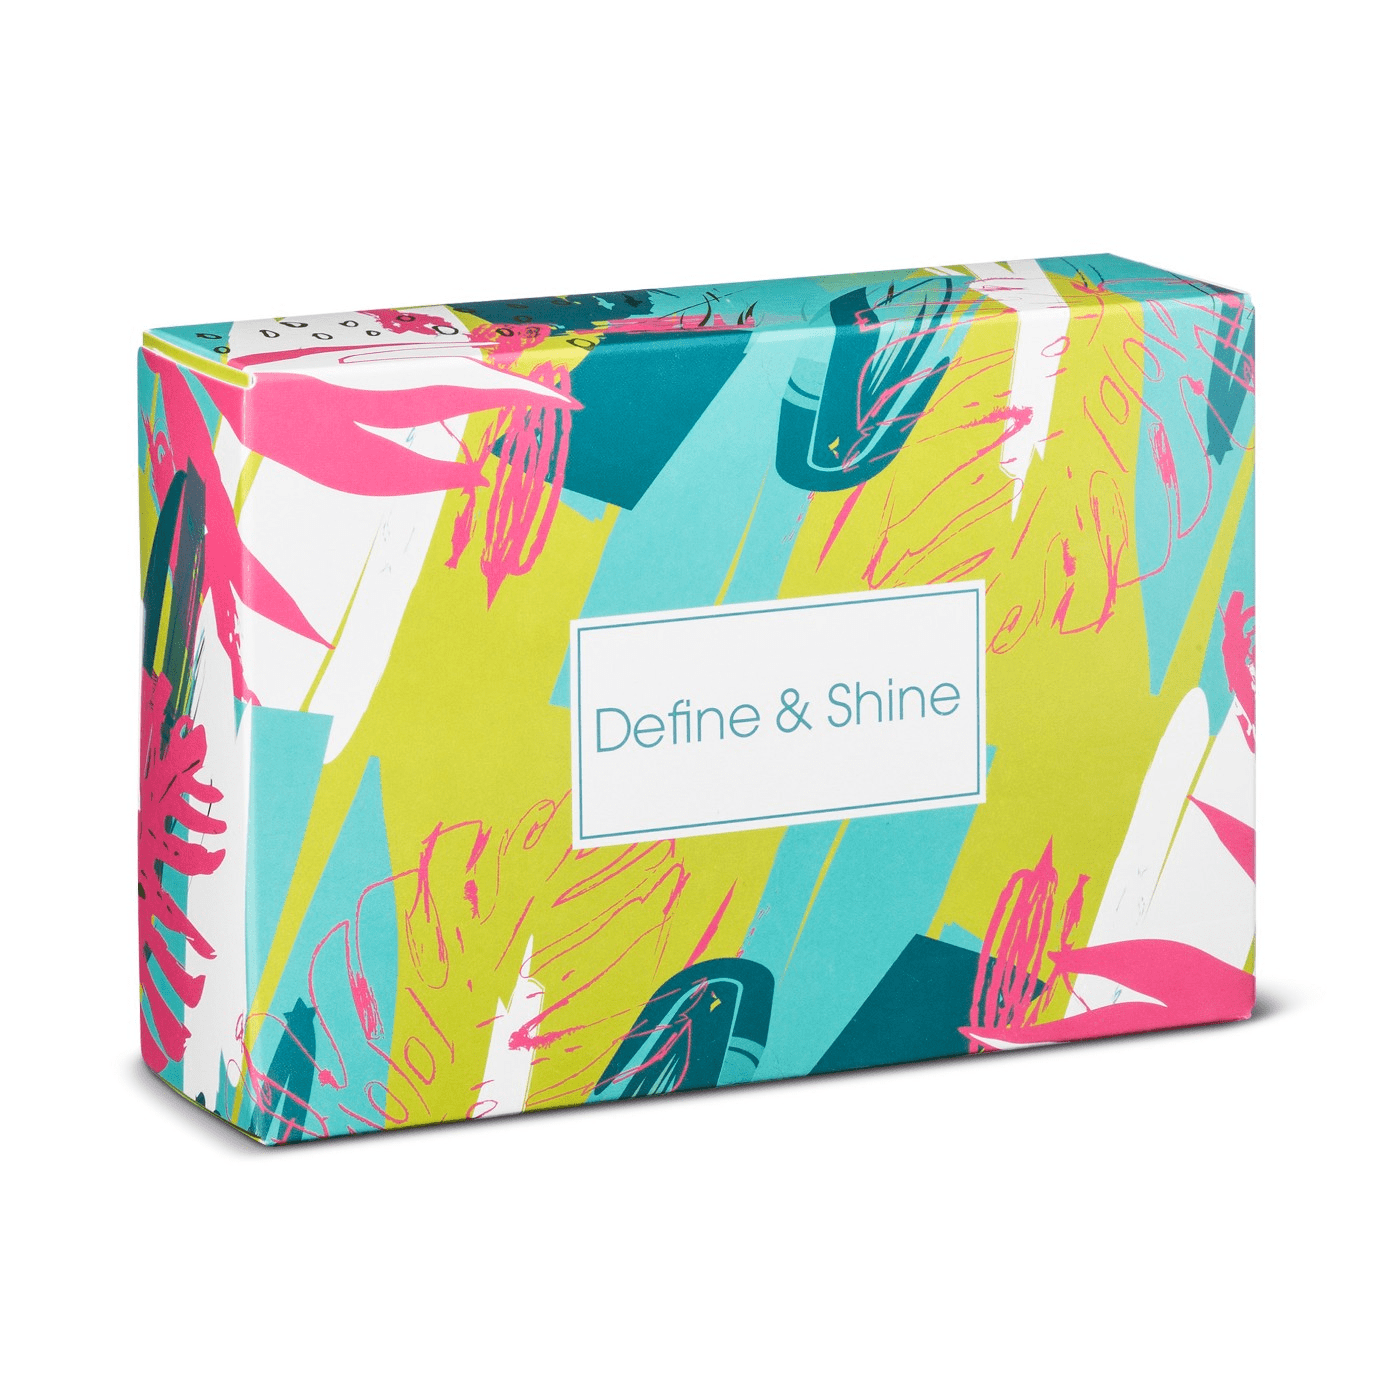 March 2018 Define & Shine Target Beauty Box Available Again + $5 Gift Card Offer!